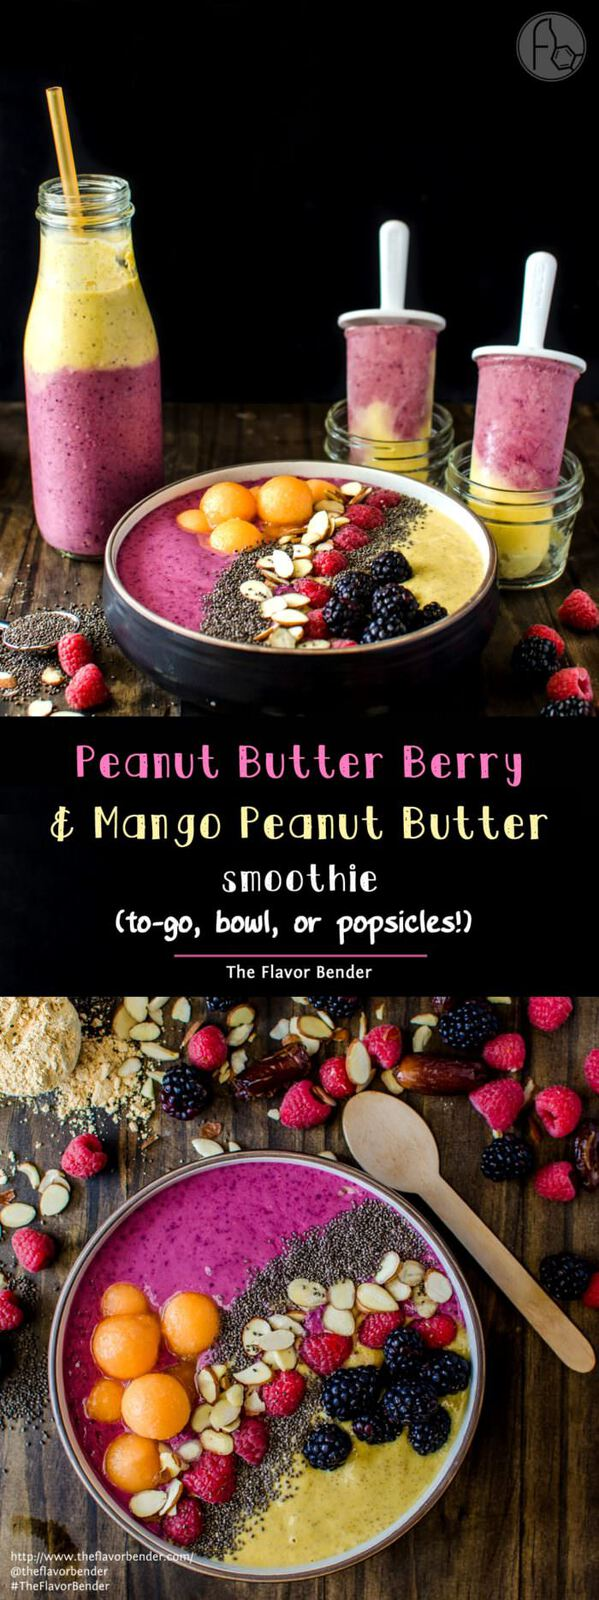 Date, Peanut Butter Berry Smoothie Bowl with Mango Peanut Butter smoothie - a Secret ingredient that makes this taste AMAZING will have you hooked to this protein packed delicious smoothie! Perfect as an On the Go layered smoothie, or freeze them for PERFECT after school snack! This is #MySmoothie REPIN to save. CLICK to get the recipe! #TheFlavorBender [ad]